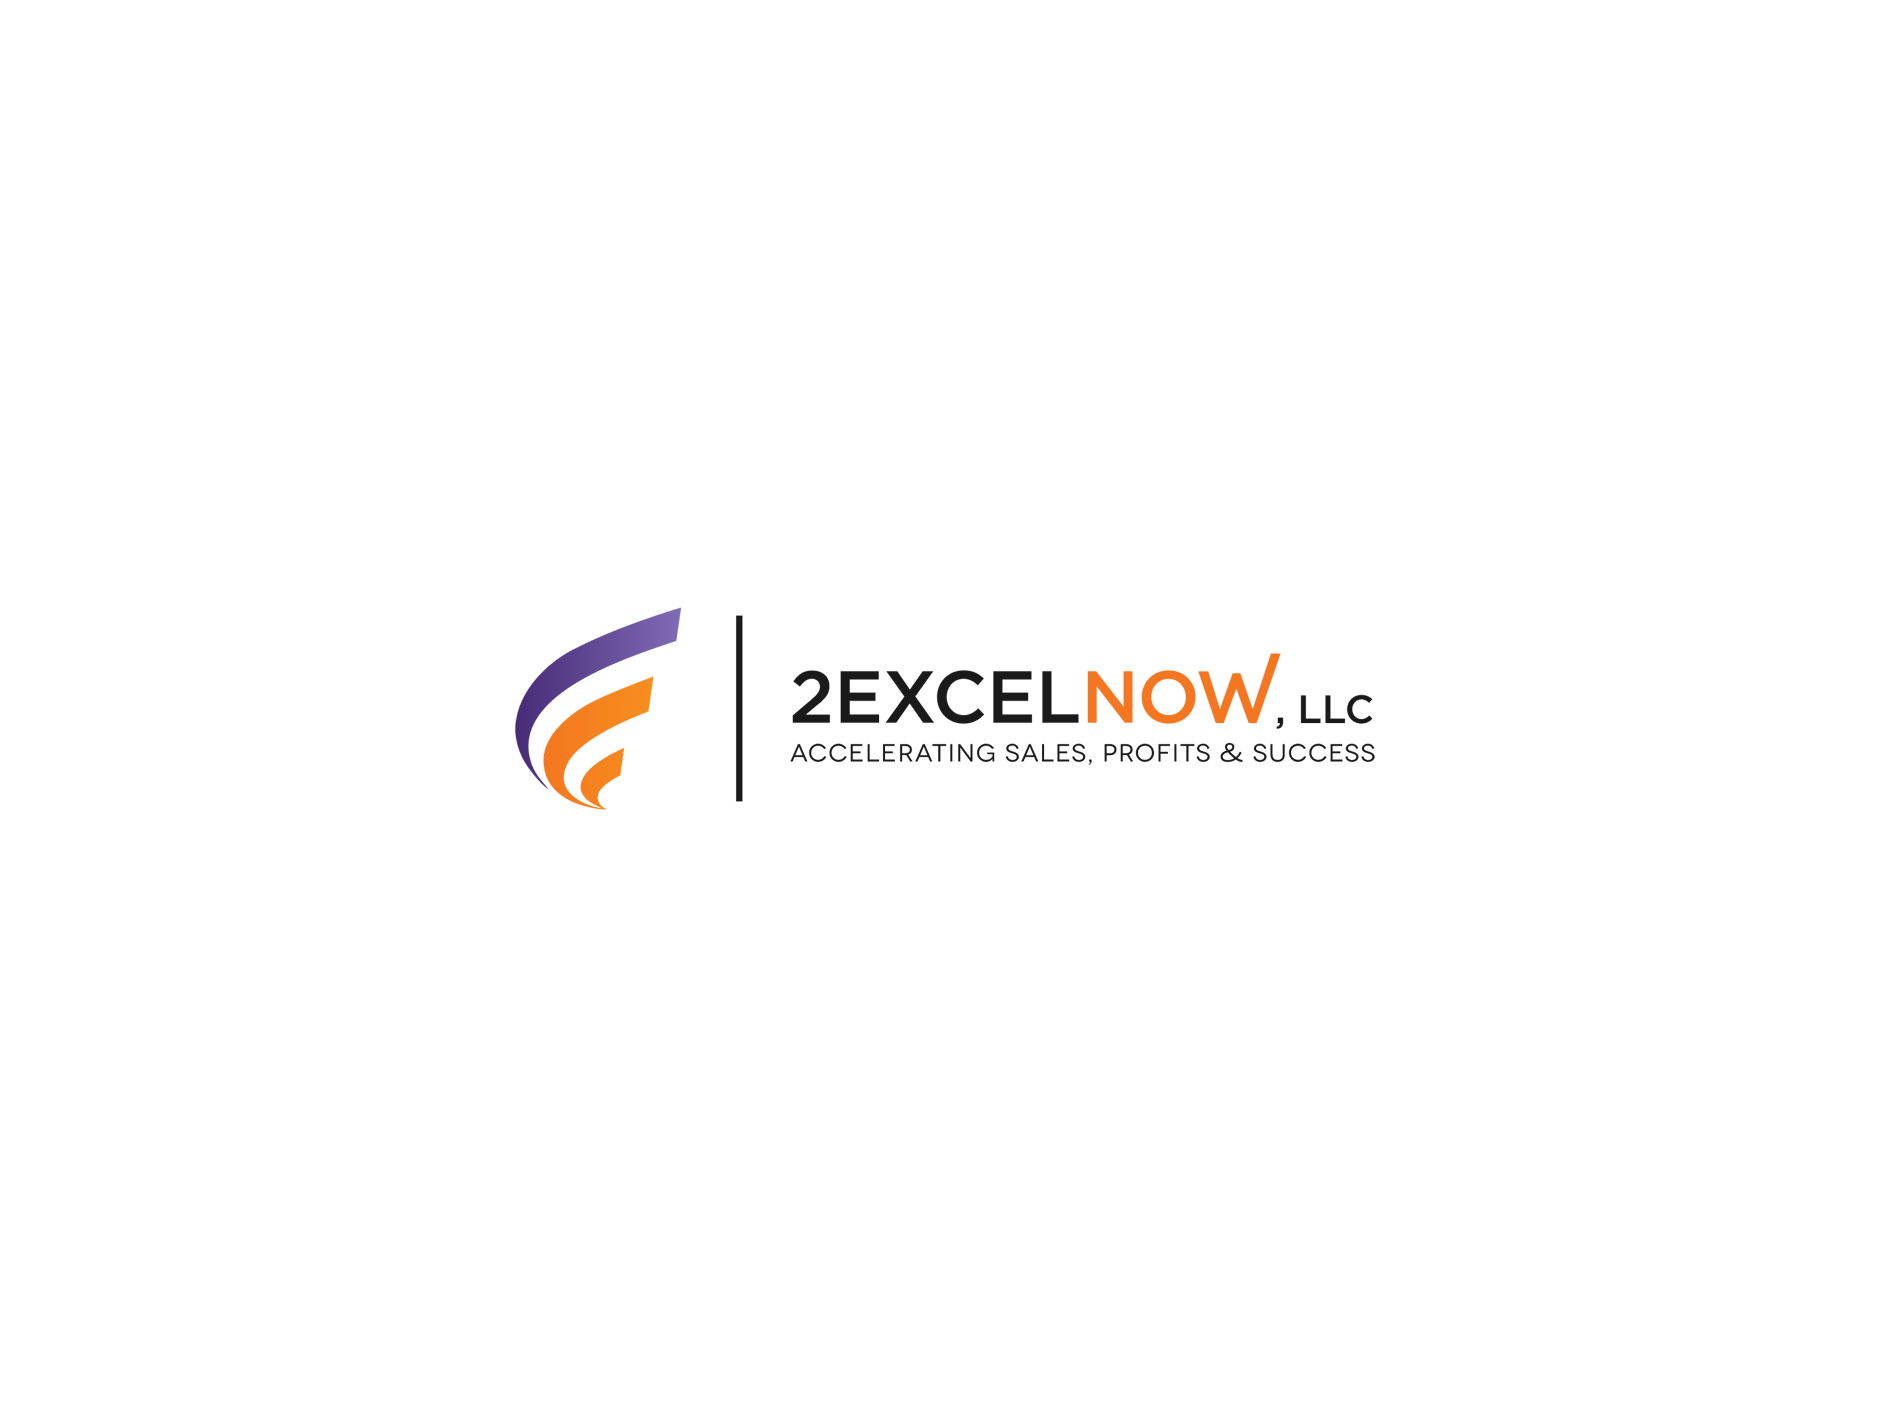 Create the next logo for 2 Excel Now, LLC